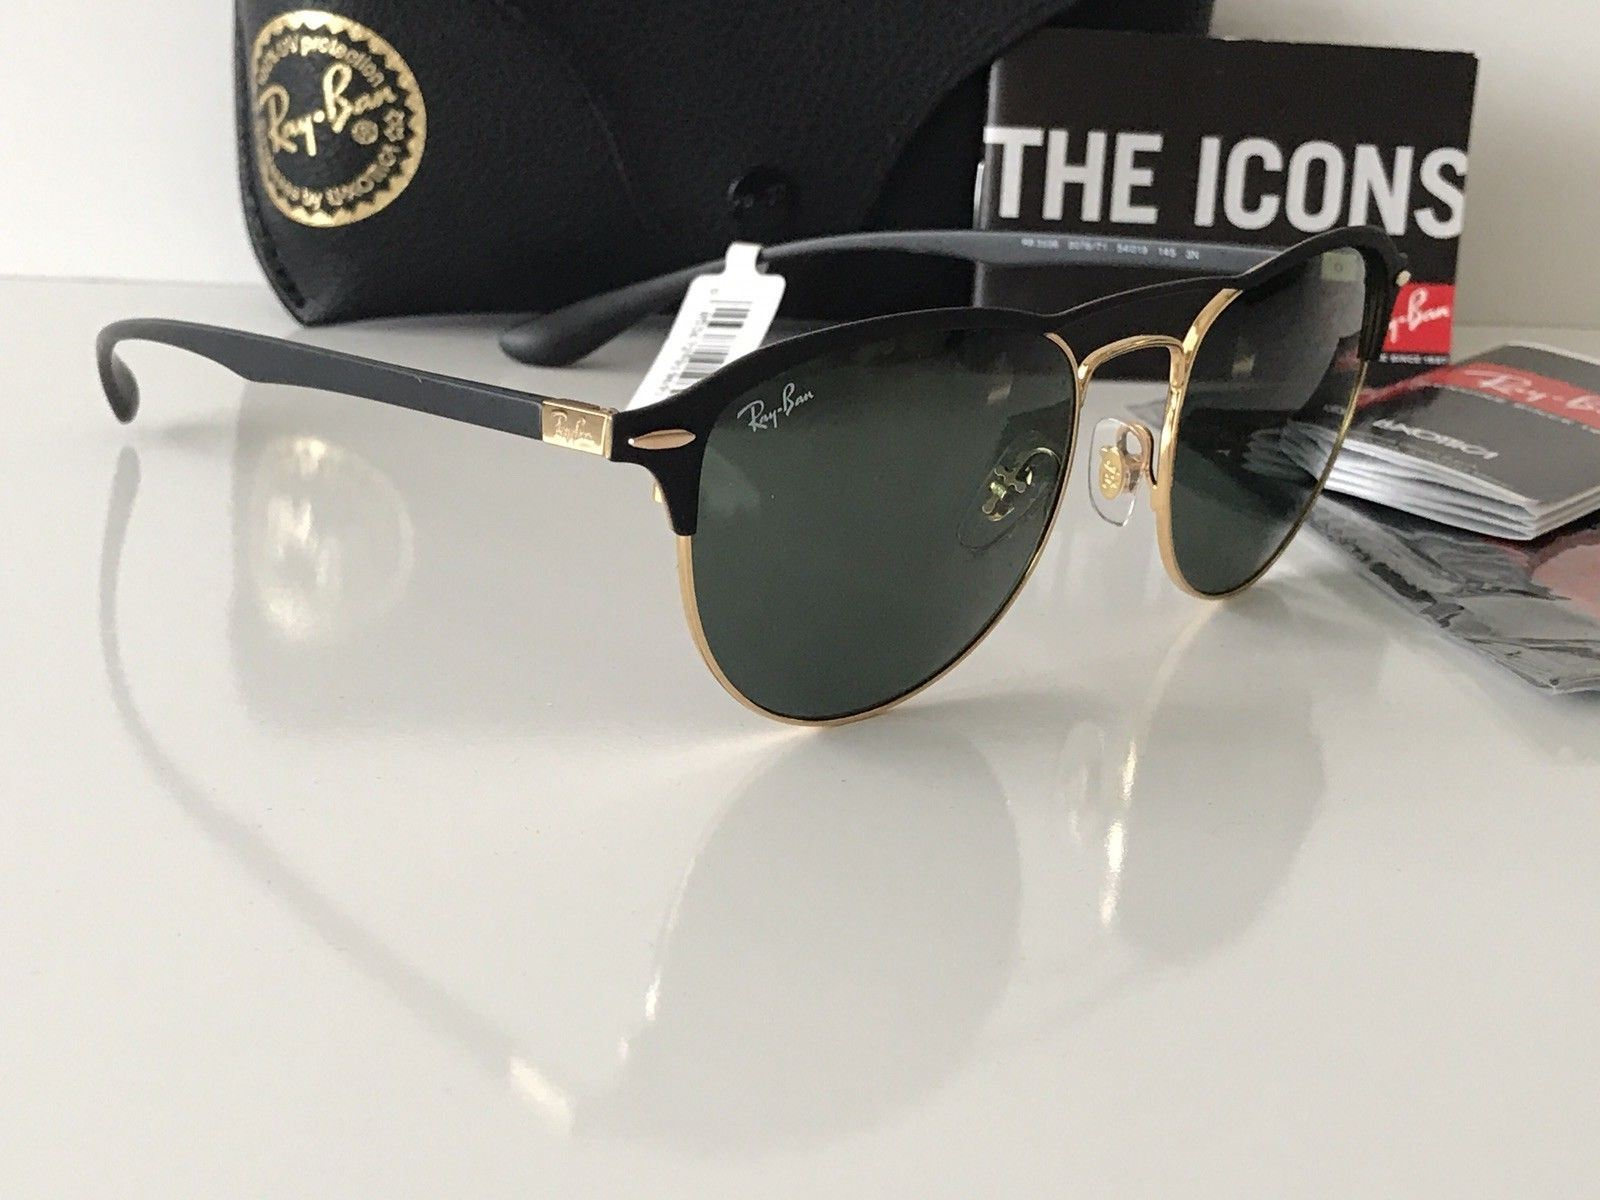 b8bcbed740 NWT Ray Ban Sunglasses RB 3596 9076 71 Gold Top on Matte Black Frame Green